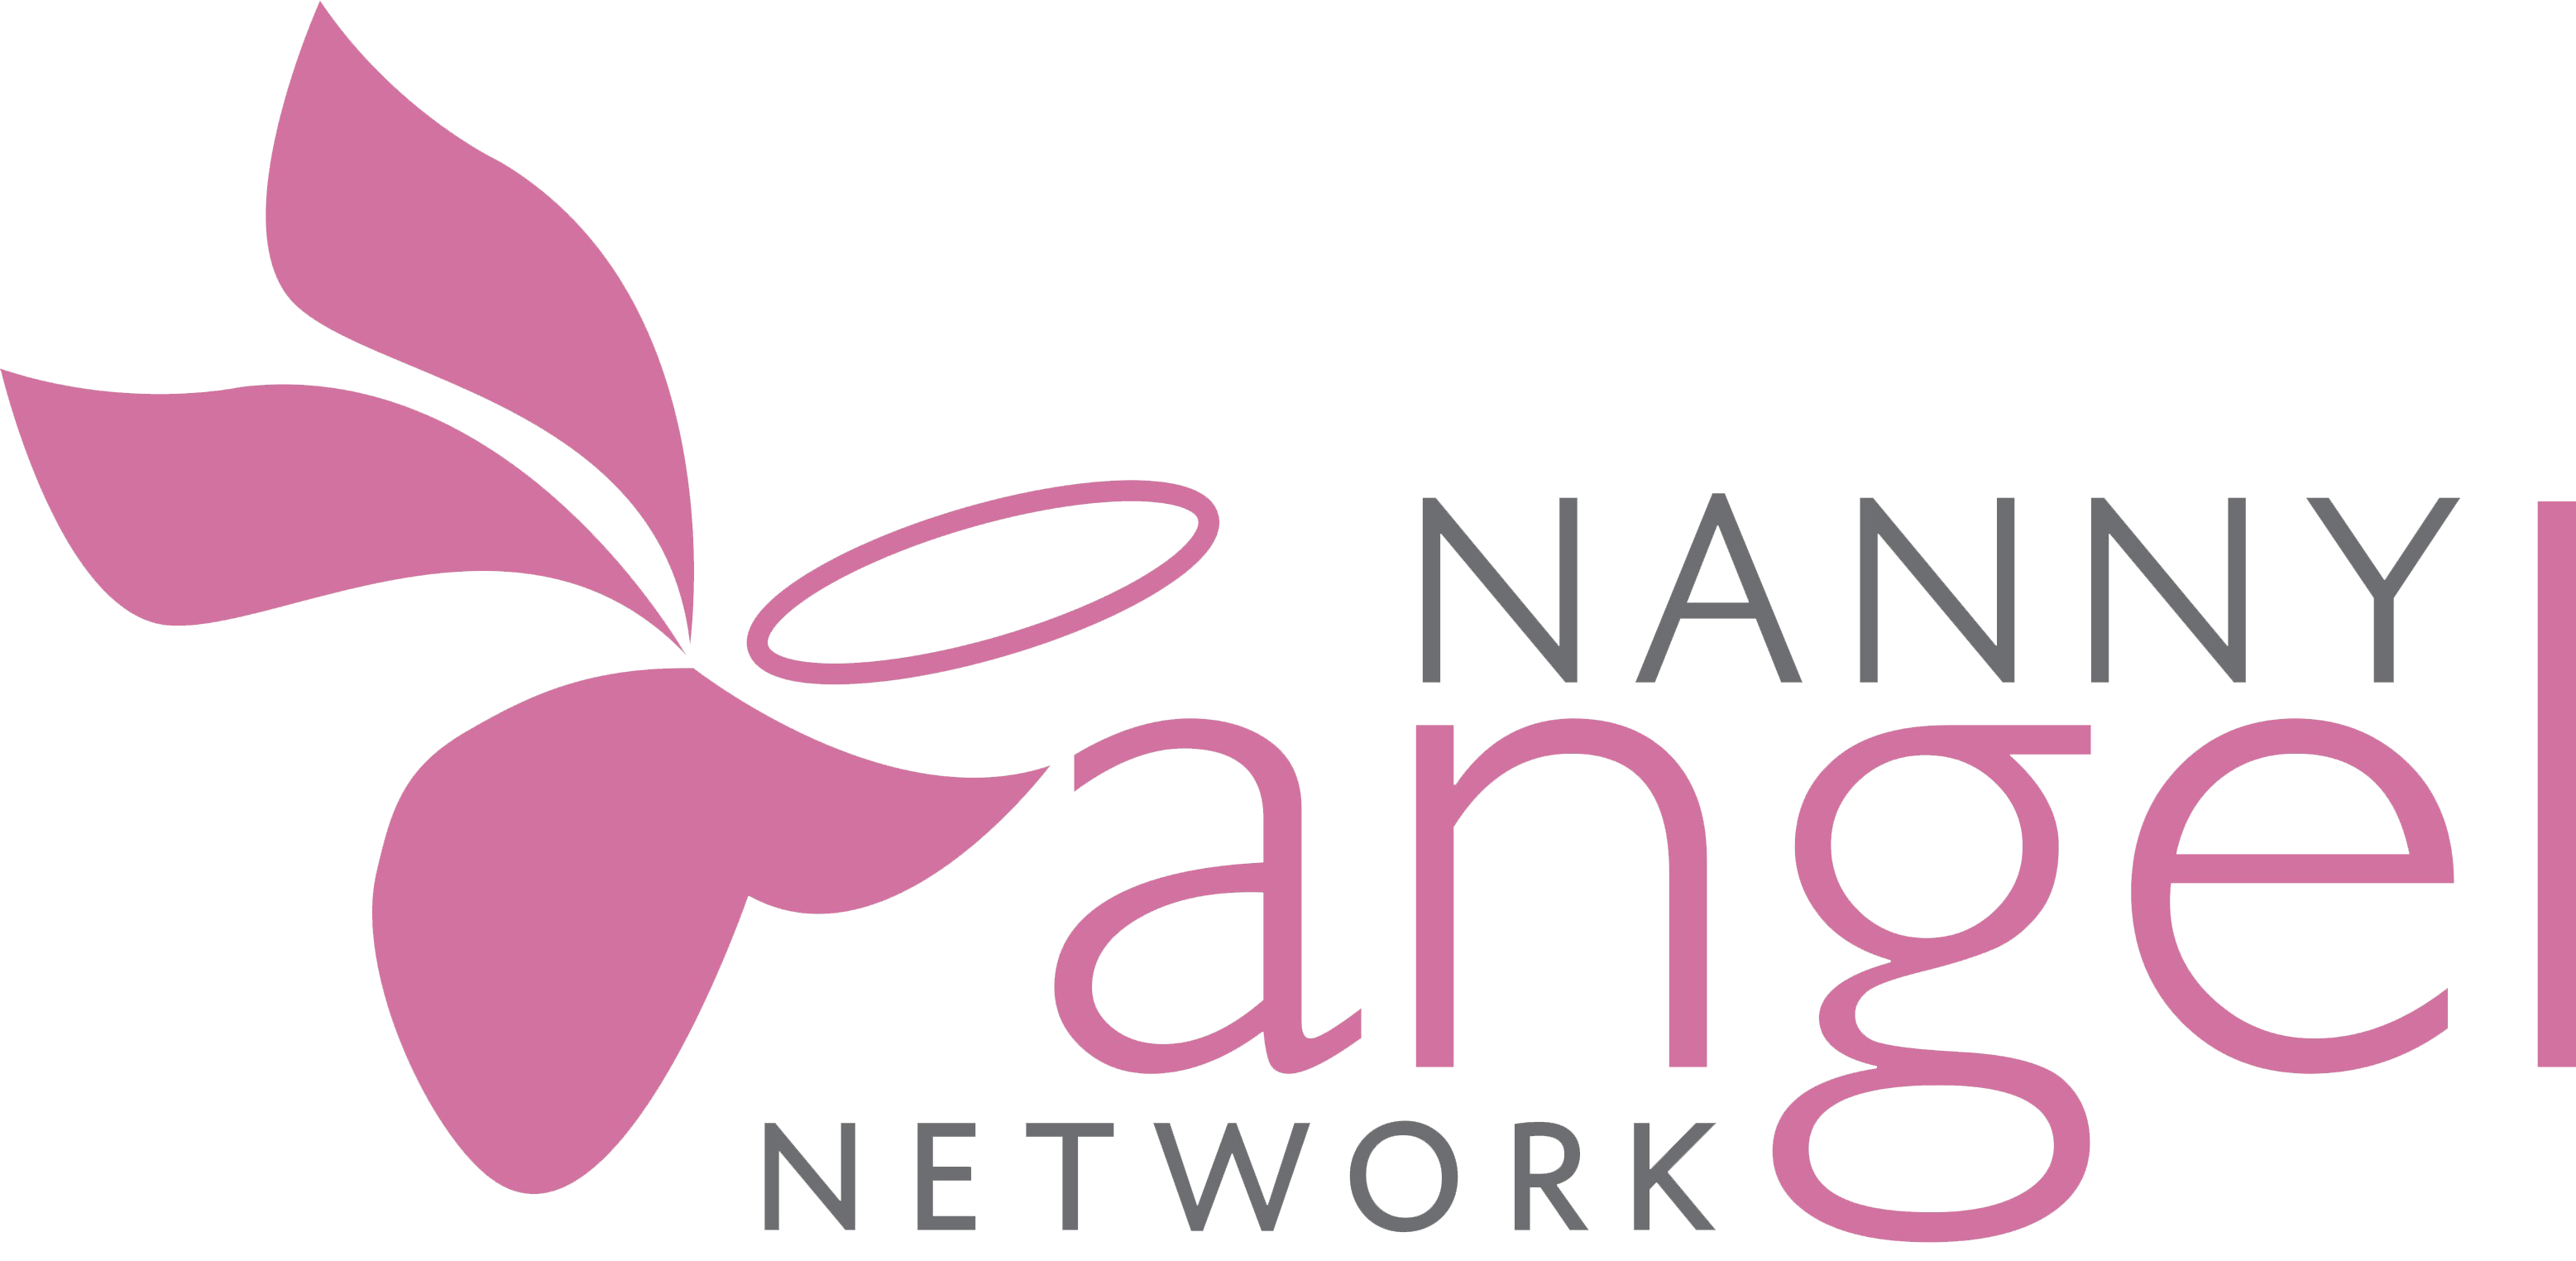 Nanny Angel Network the grand prize winner of Astellas Oncology 2019 C3 Prize to improve cancer care